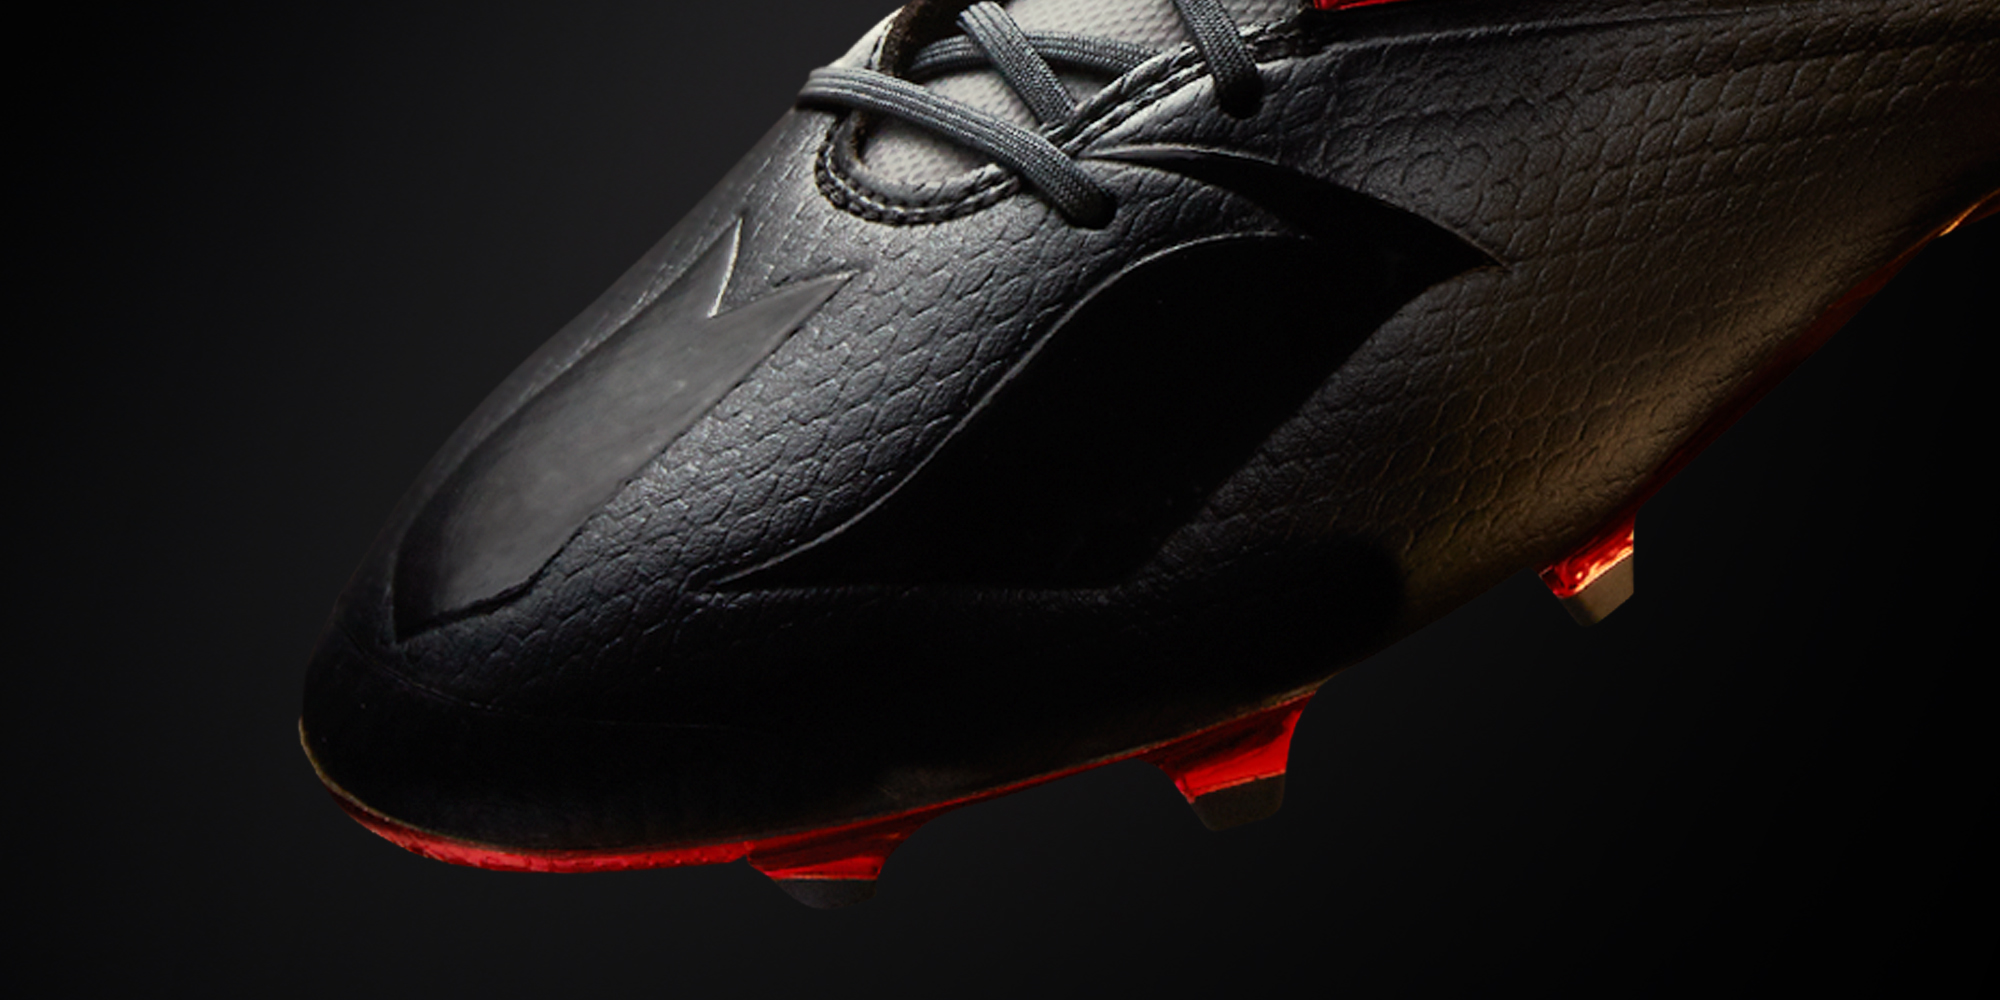 Adidas Reveals Exclusive Messi Cleat: Only 100 Pairs